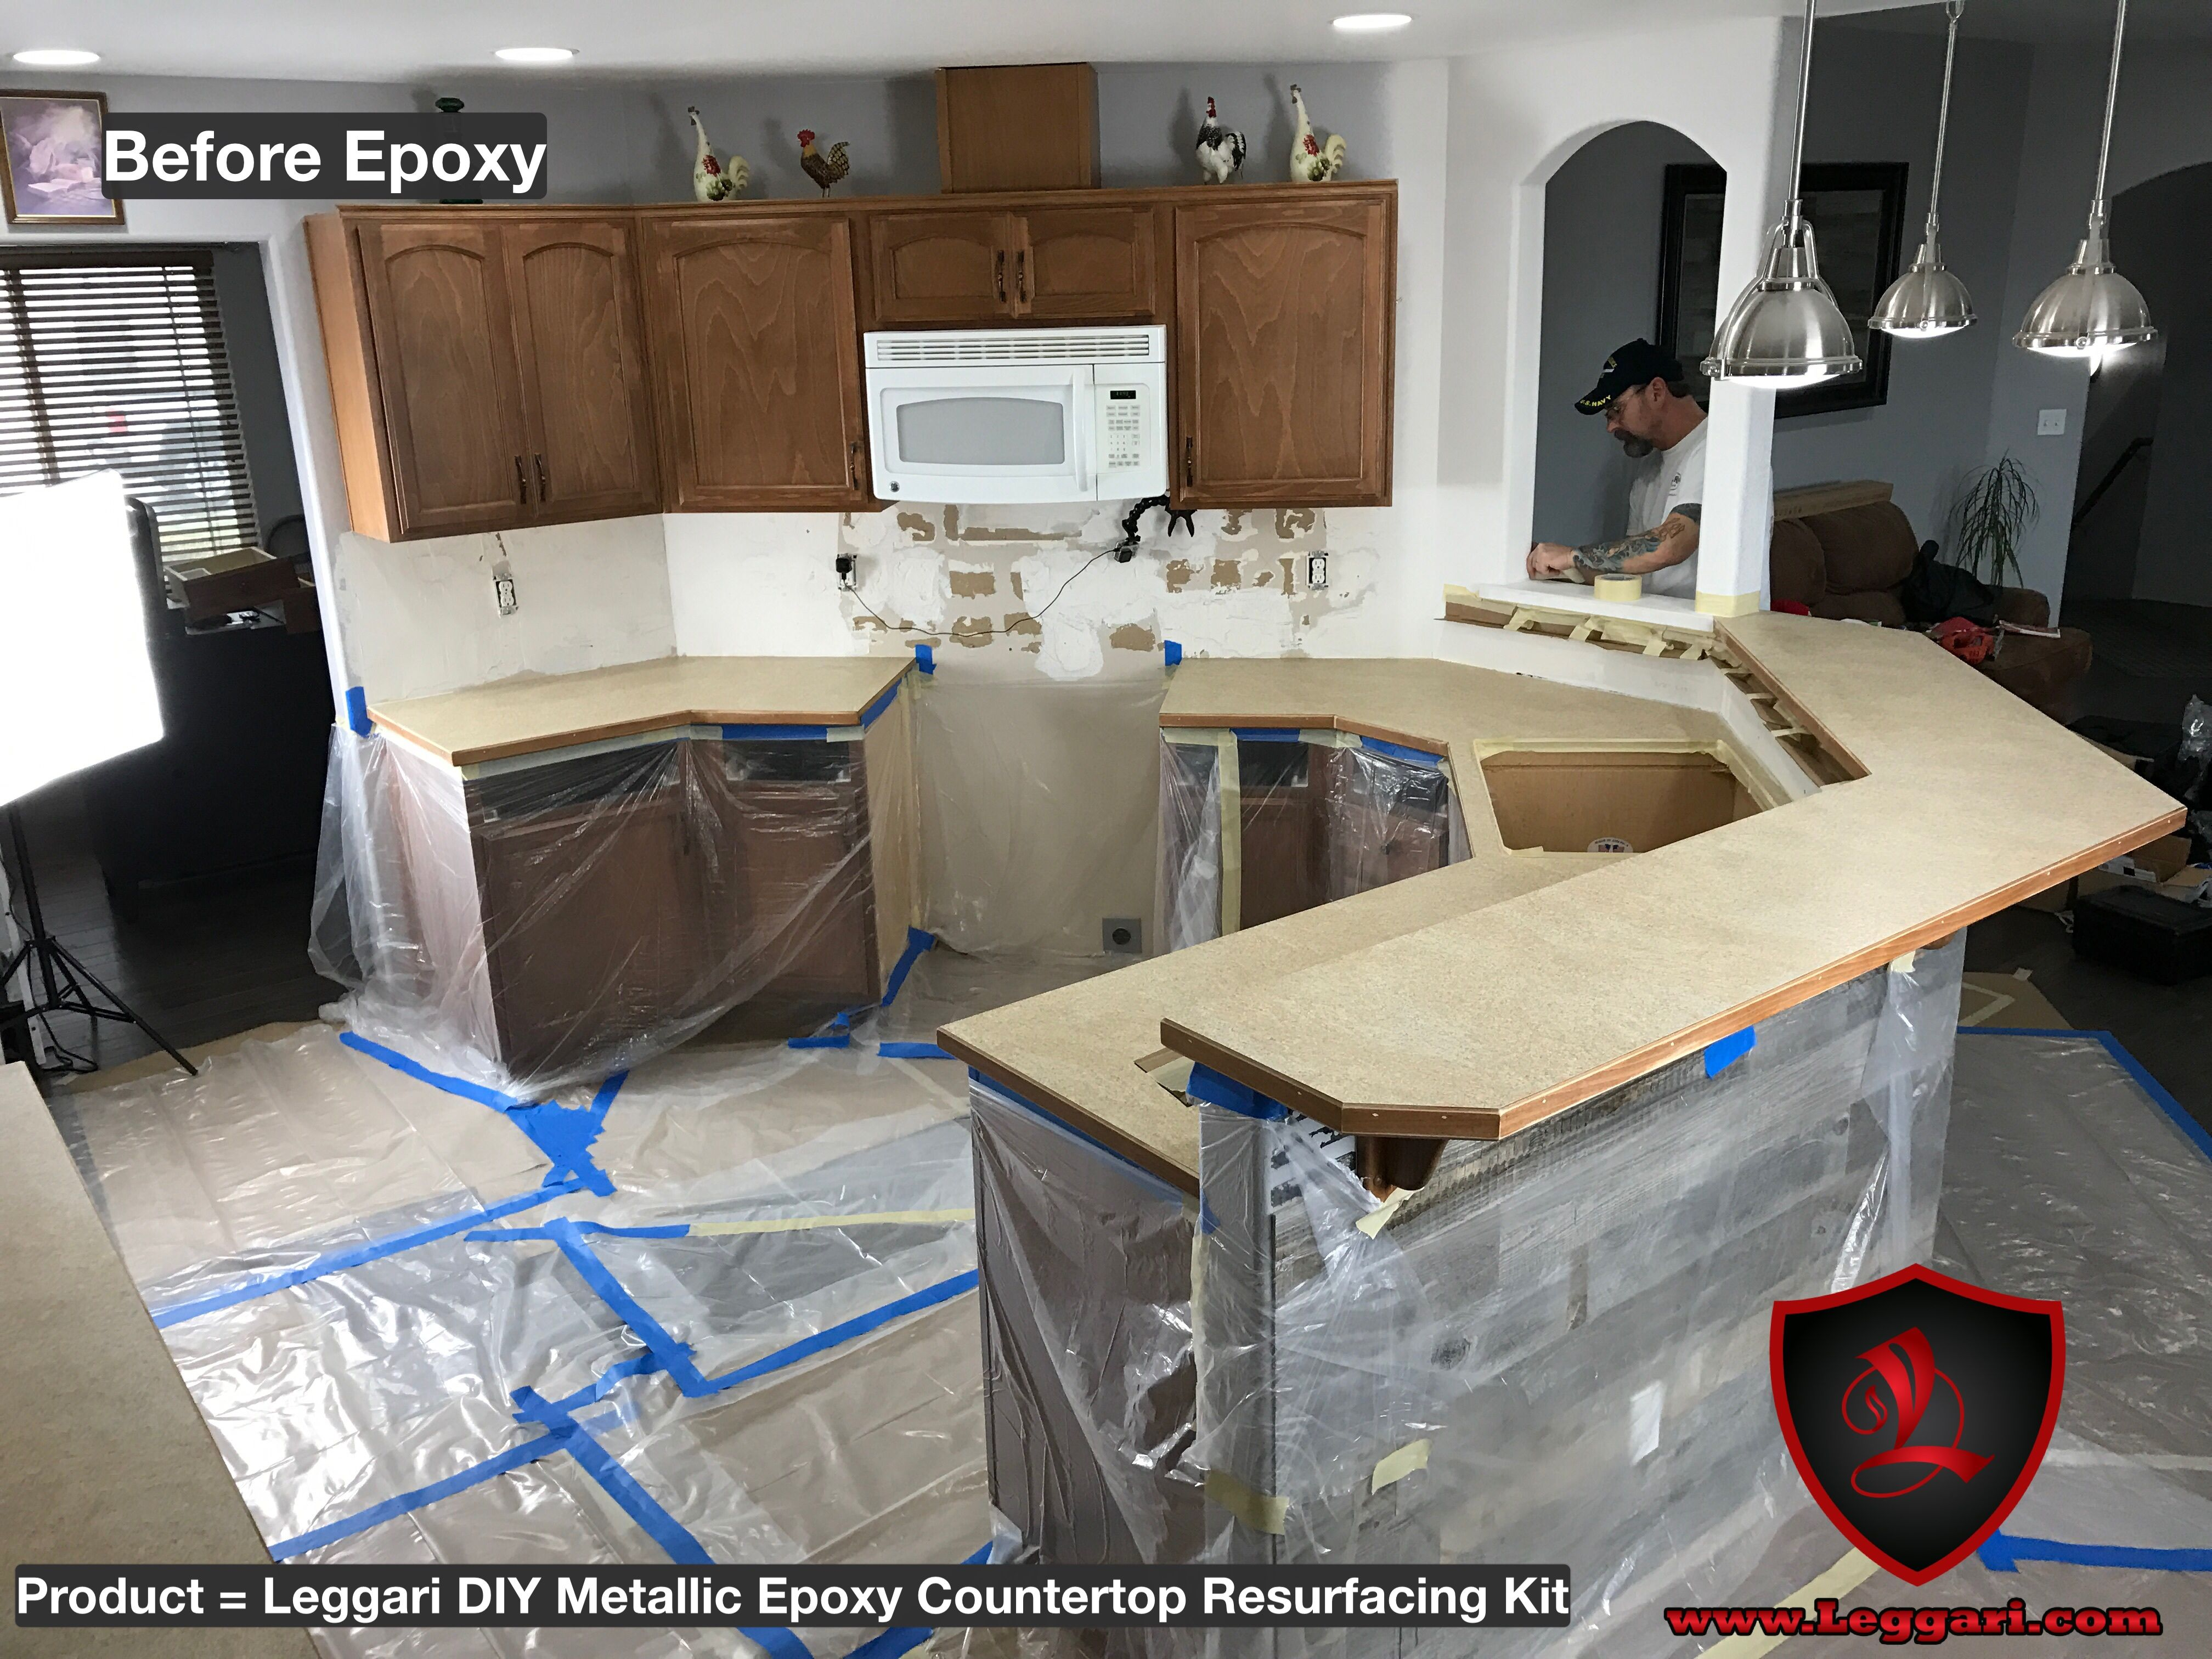 Before Pic Of Our Diy Metallic Epoxy Countertop Resurfacing Kit Was Installed Right Over There Existi Epoxy Countertop Kit Kitchen Remodel Countertop Kit